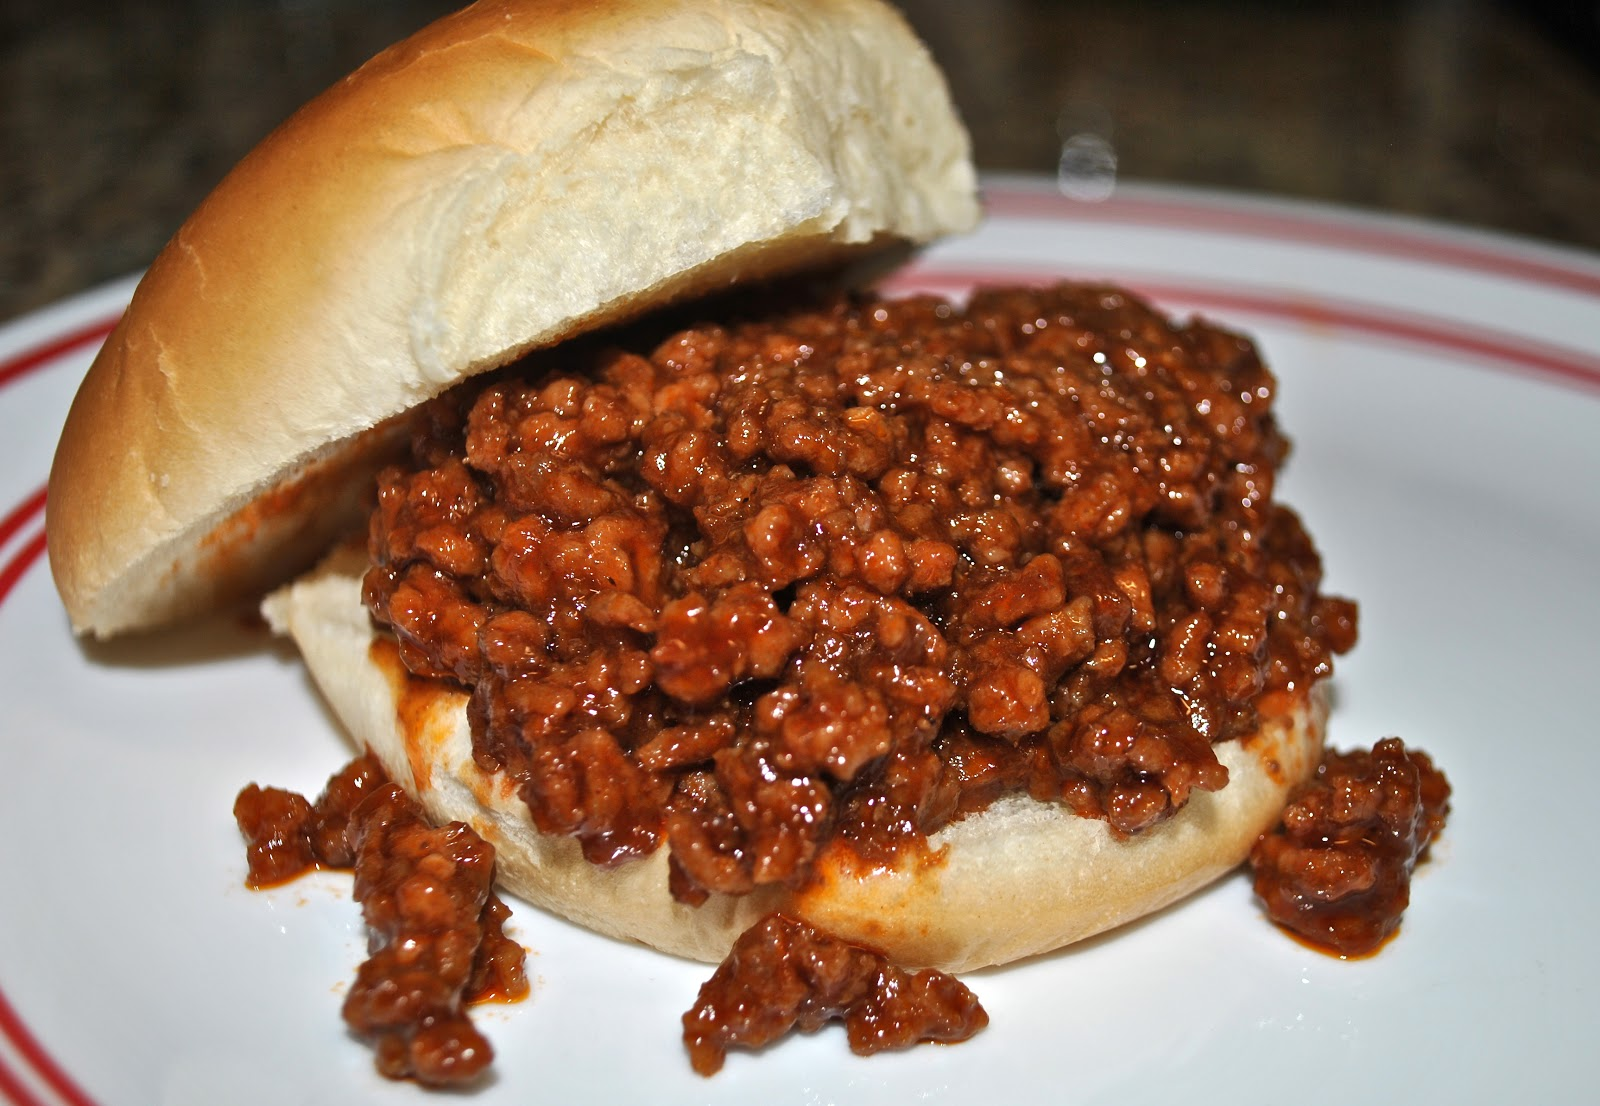 Meteorologist By Day, Chef By Night: Nannah's Sloppy Joes